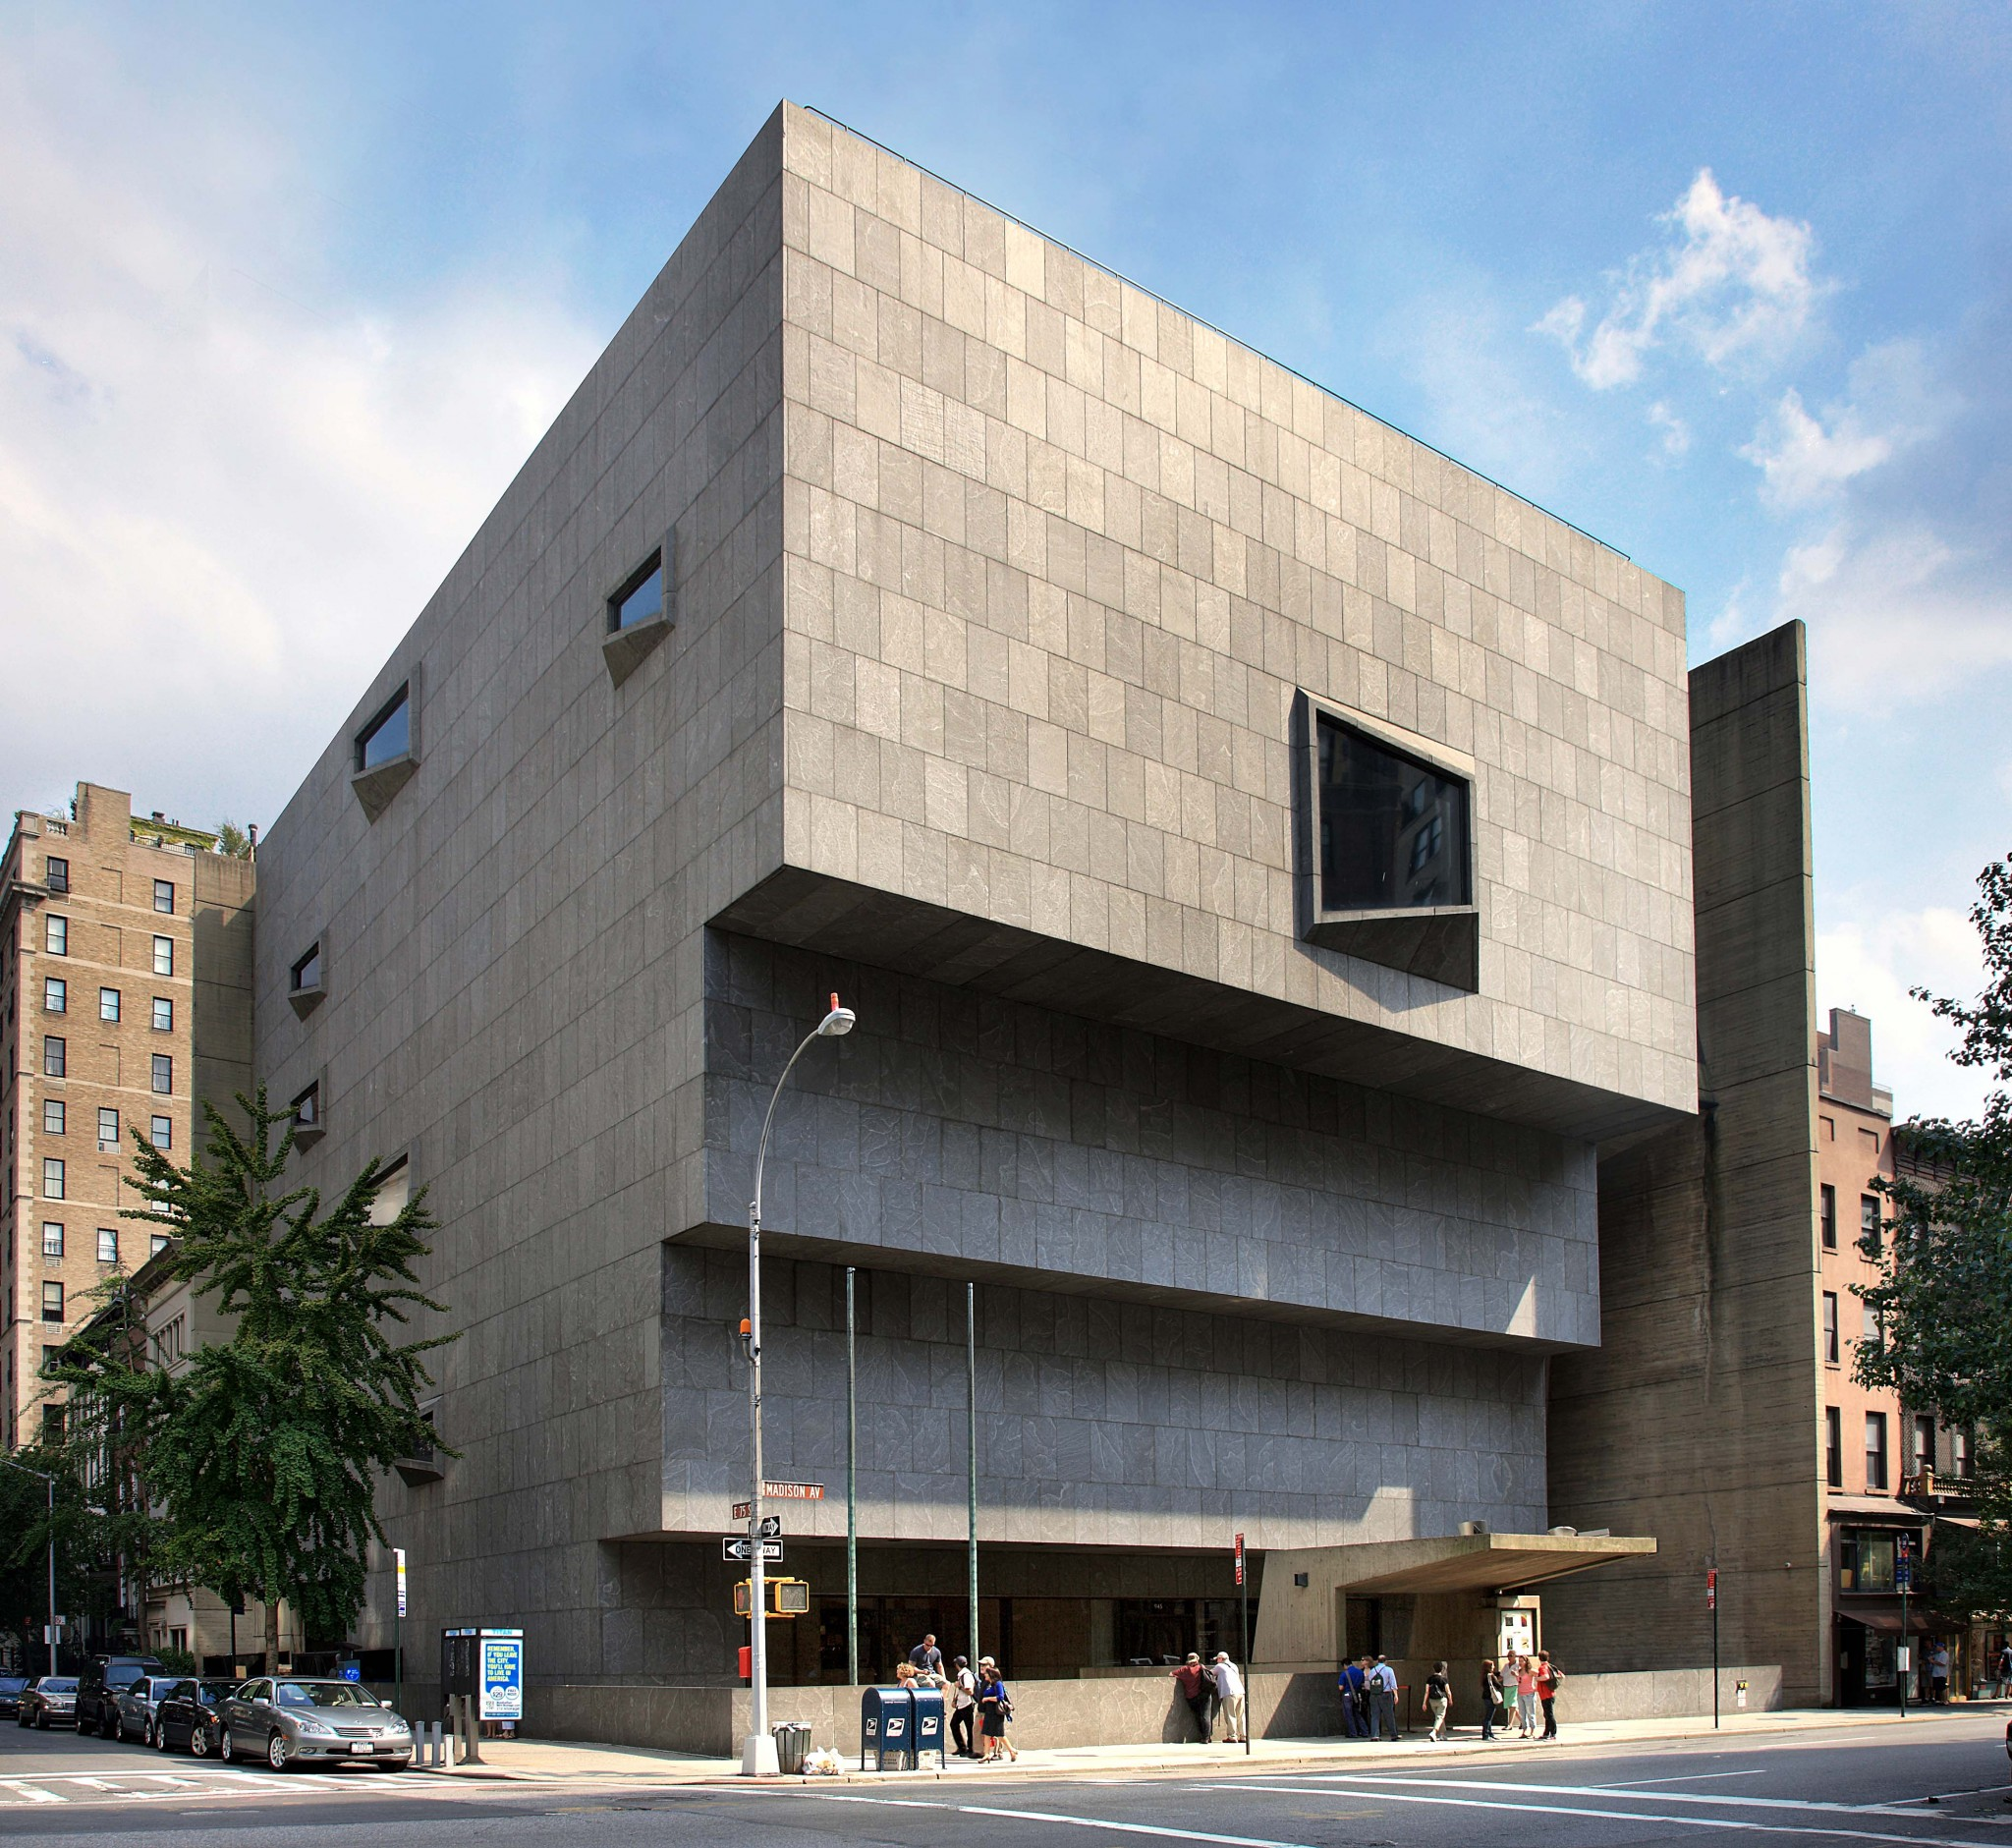 The Met Breuer is housed in the former Whitney Museum of American Art building, photography by Ed Lederman, courtesy of The Metropolitan Museum of Art